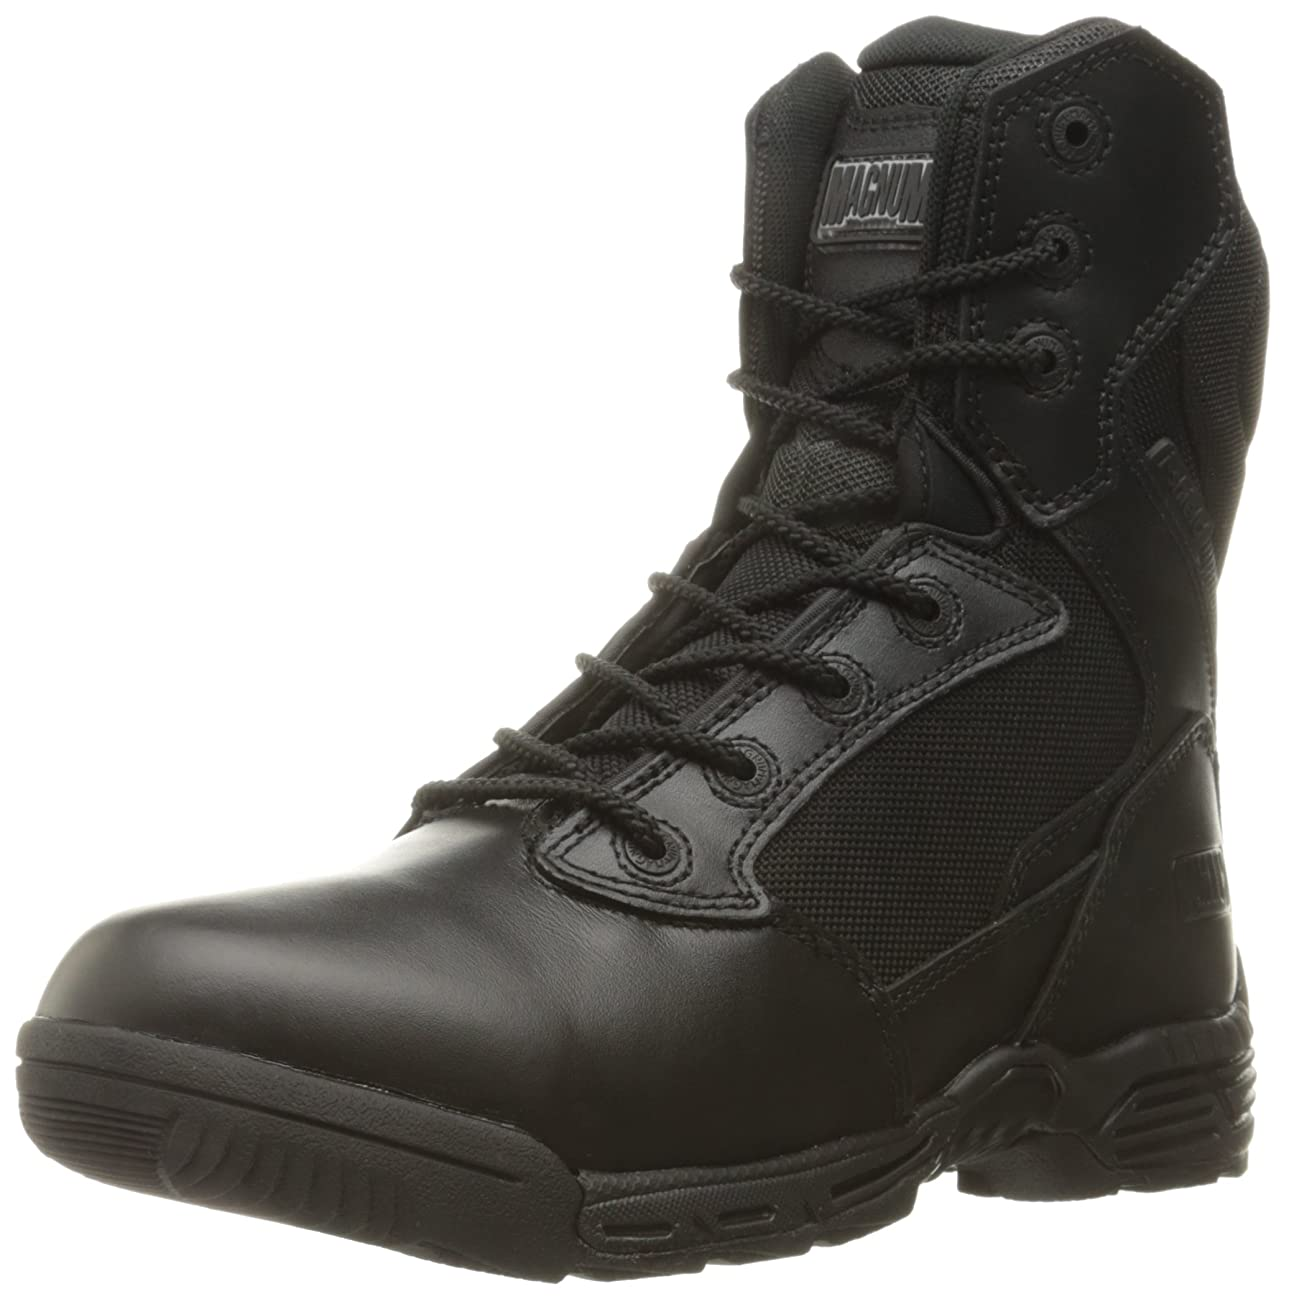 Magnum Women's Stealth Force 8.0 Side Zip Military & Tactical Boot